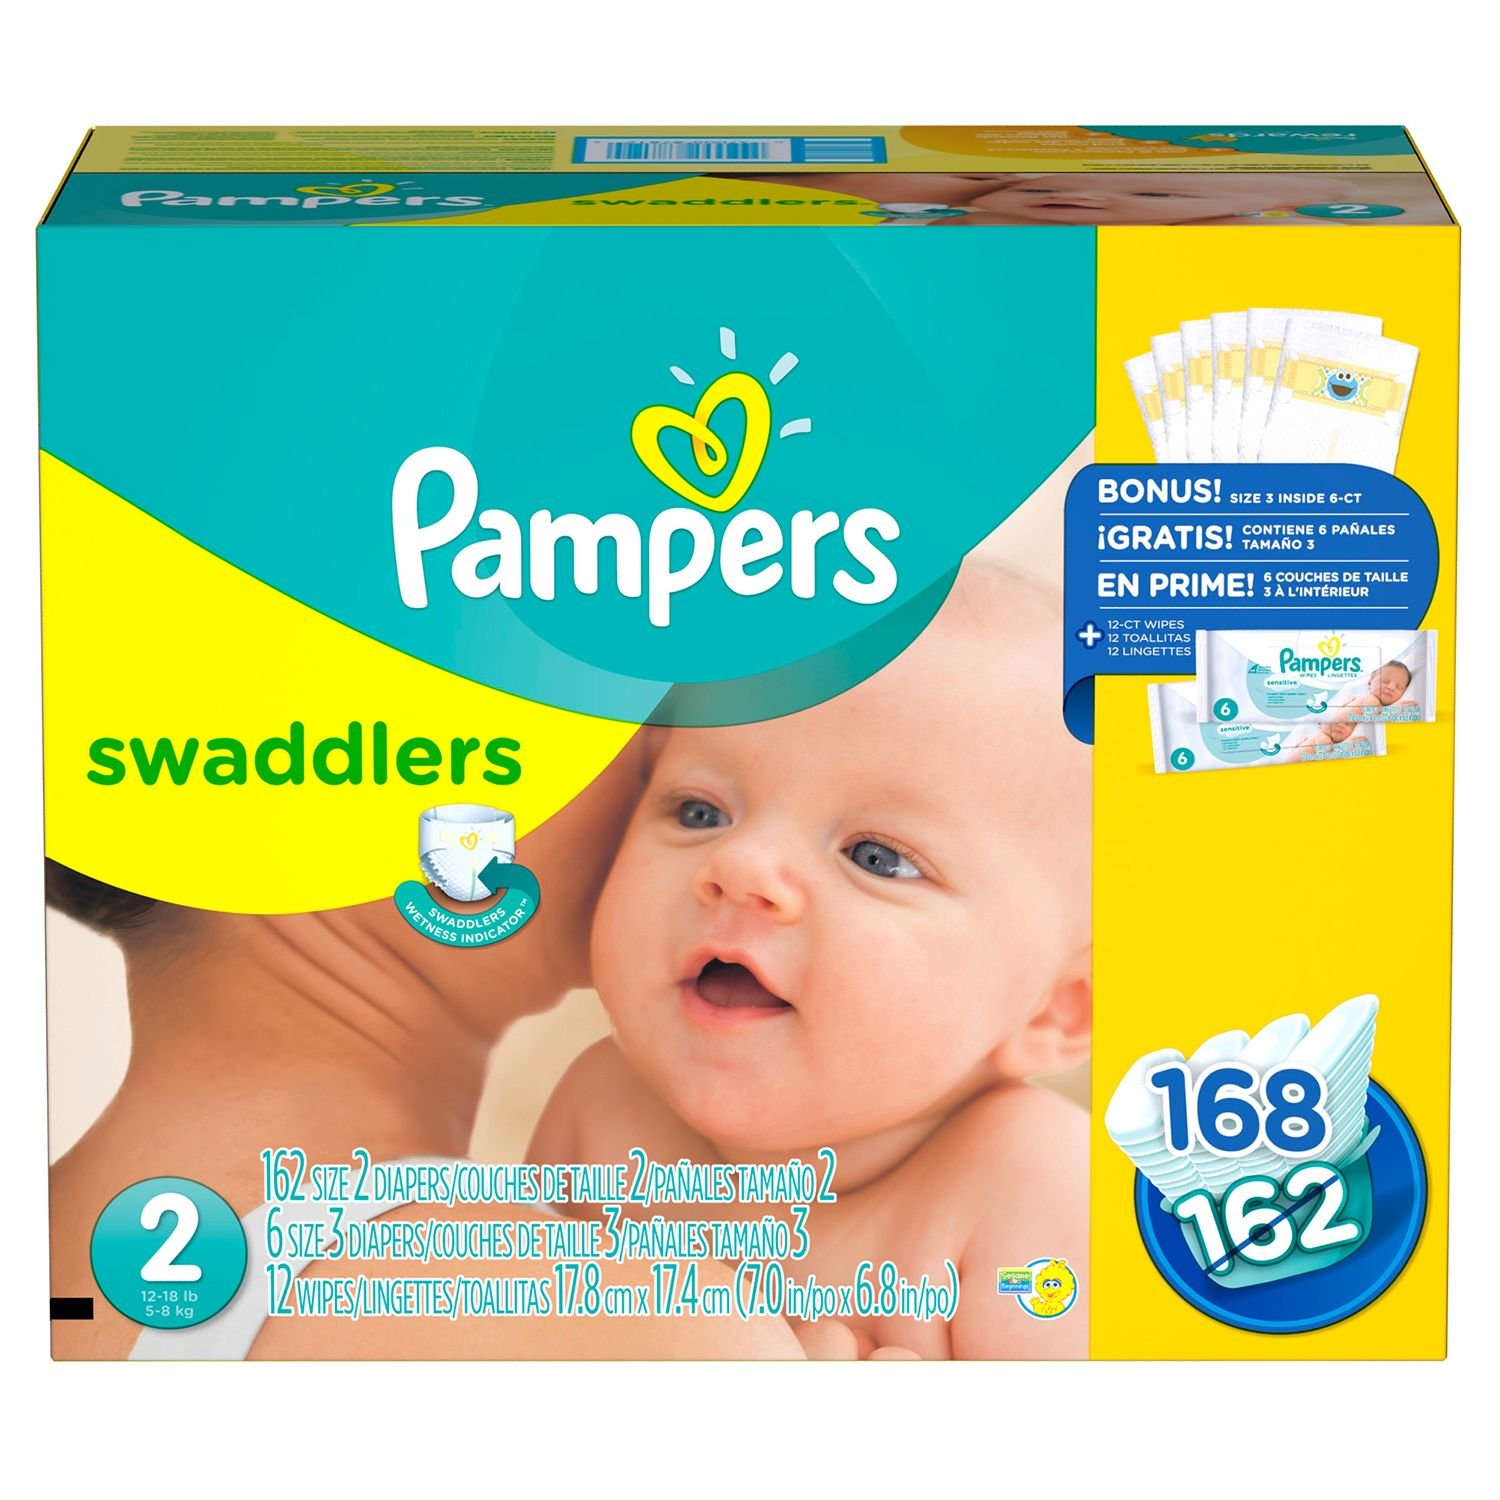 Pampers Swaddlers Diapers, Size 2 (12-18 lbs.), 162 ct. diapers